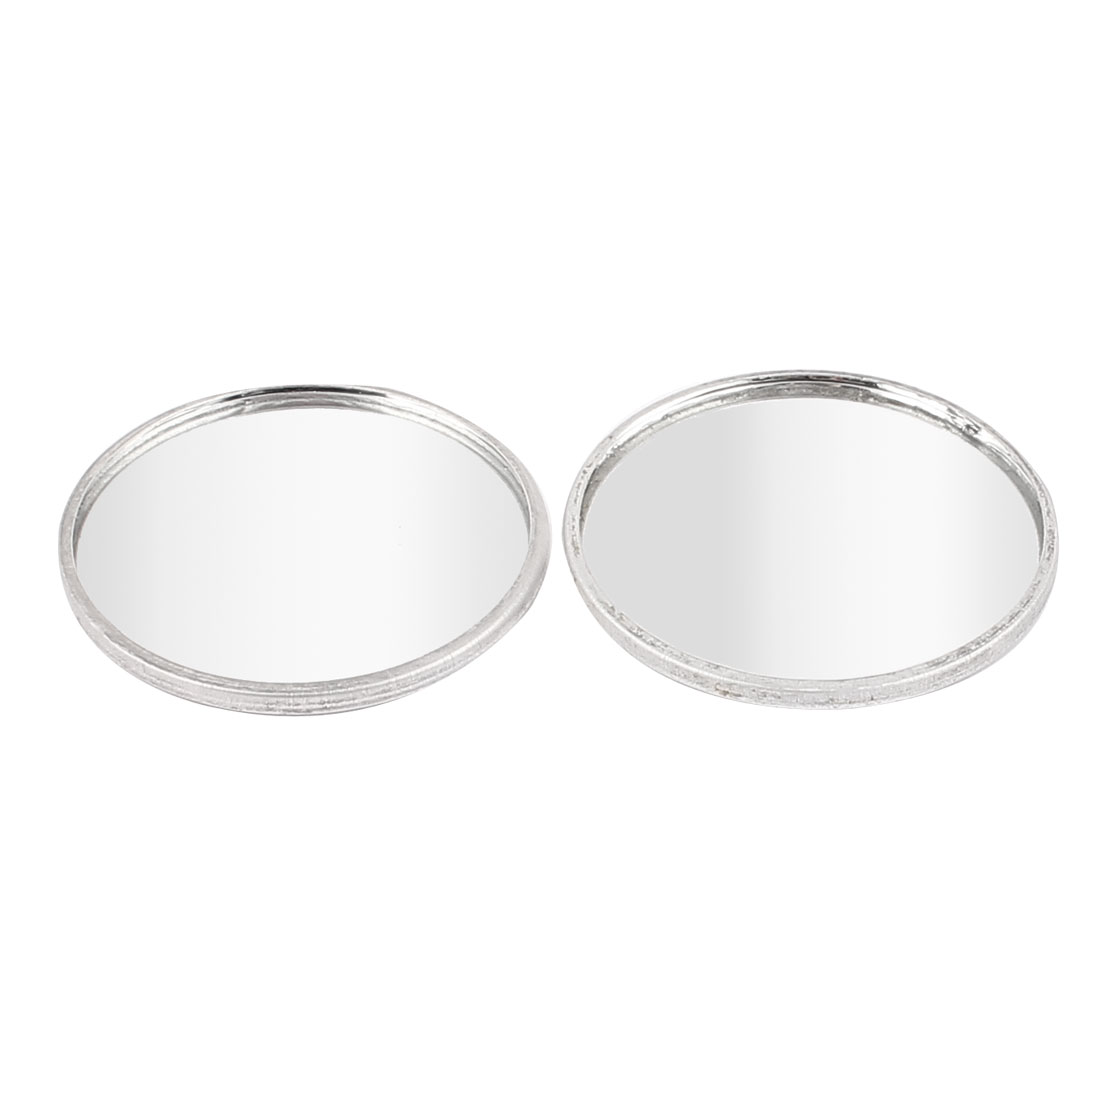 Car Vehicle 40mm Dia Round Self Adhesive Wide Angle Rearview Blind Spot Mirror Rearmirror 2pcs